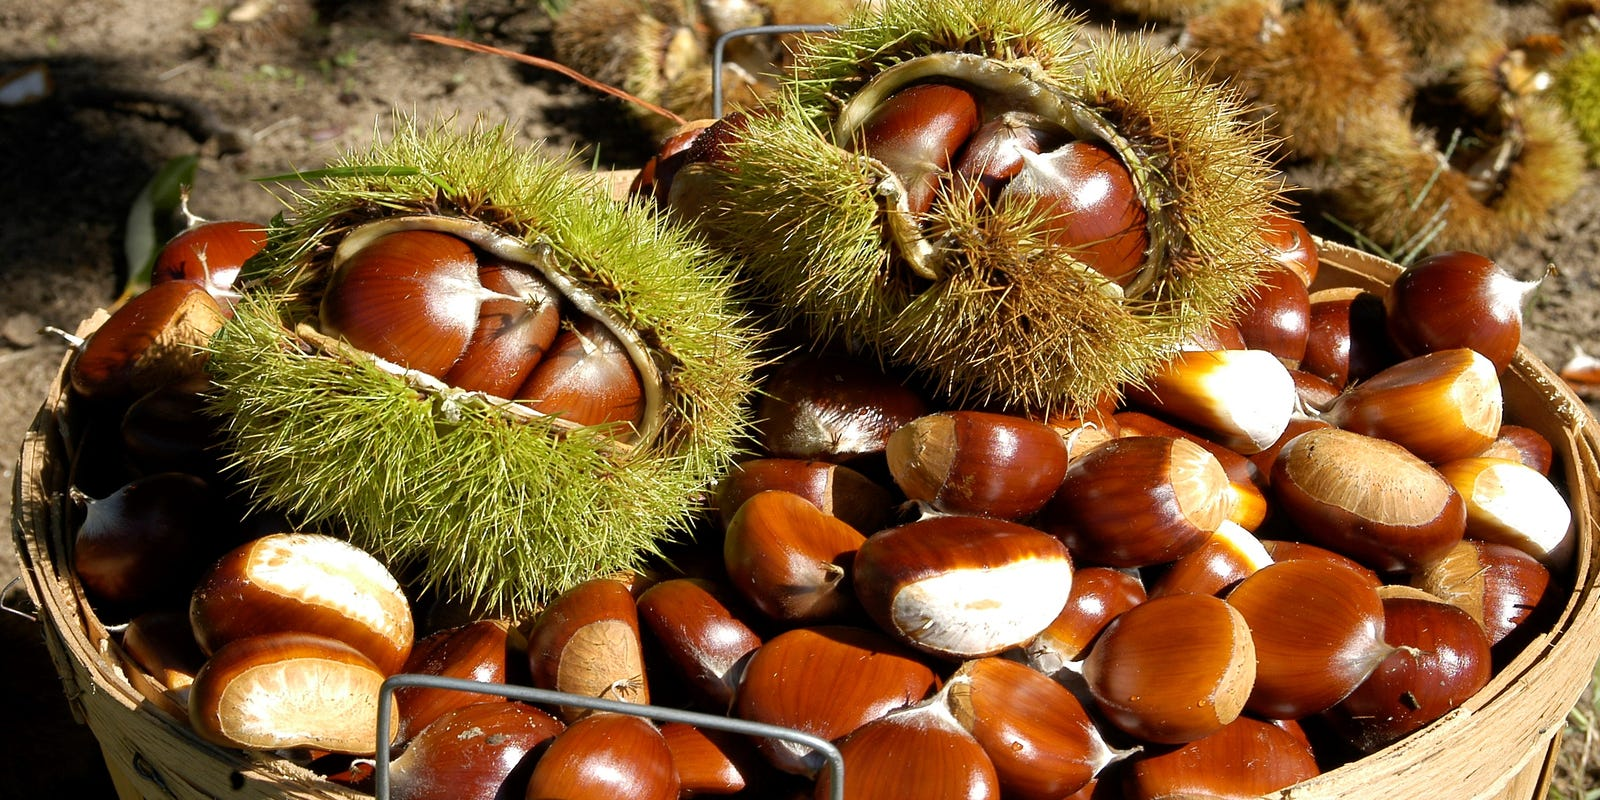 Chestnuts: A Michigan tradition makes a comeback